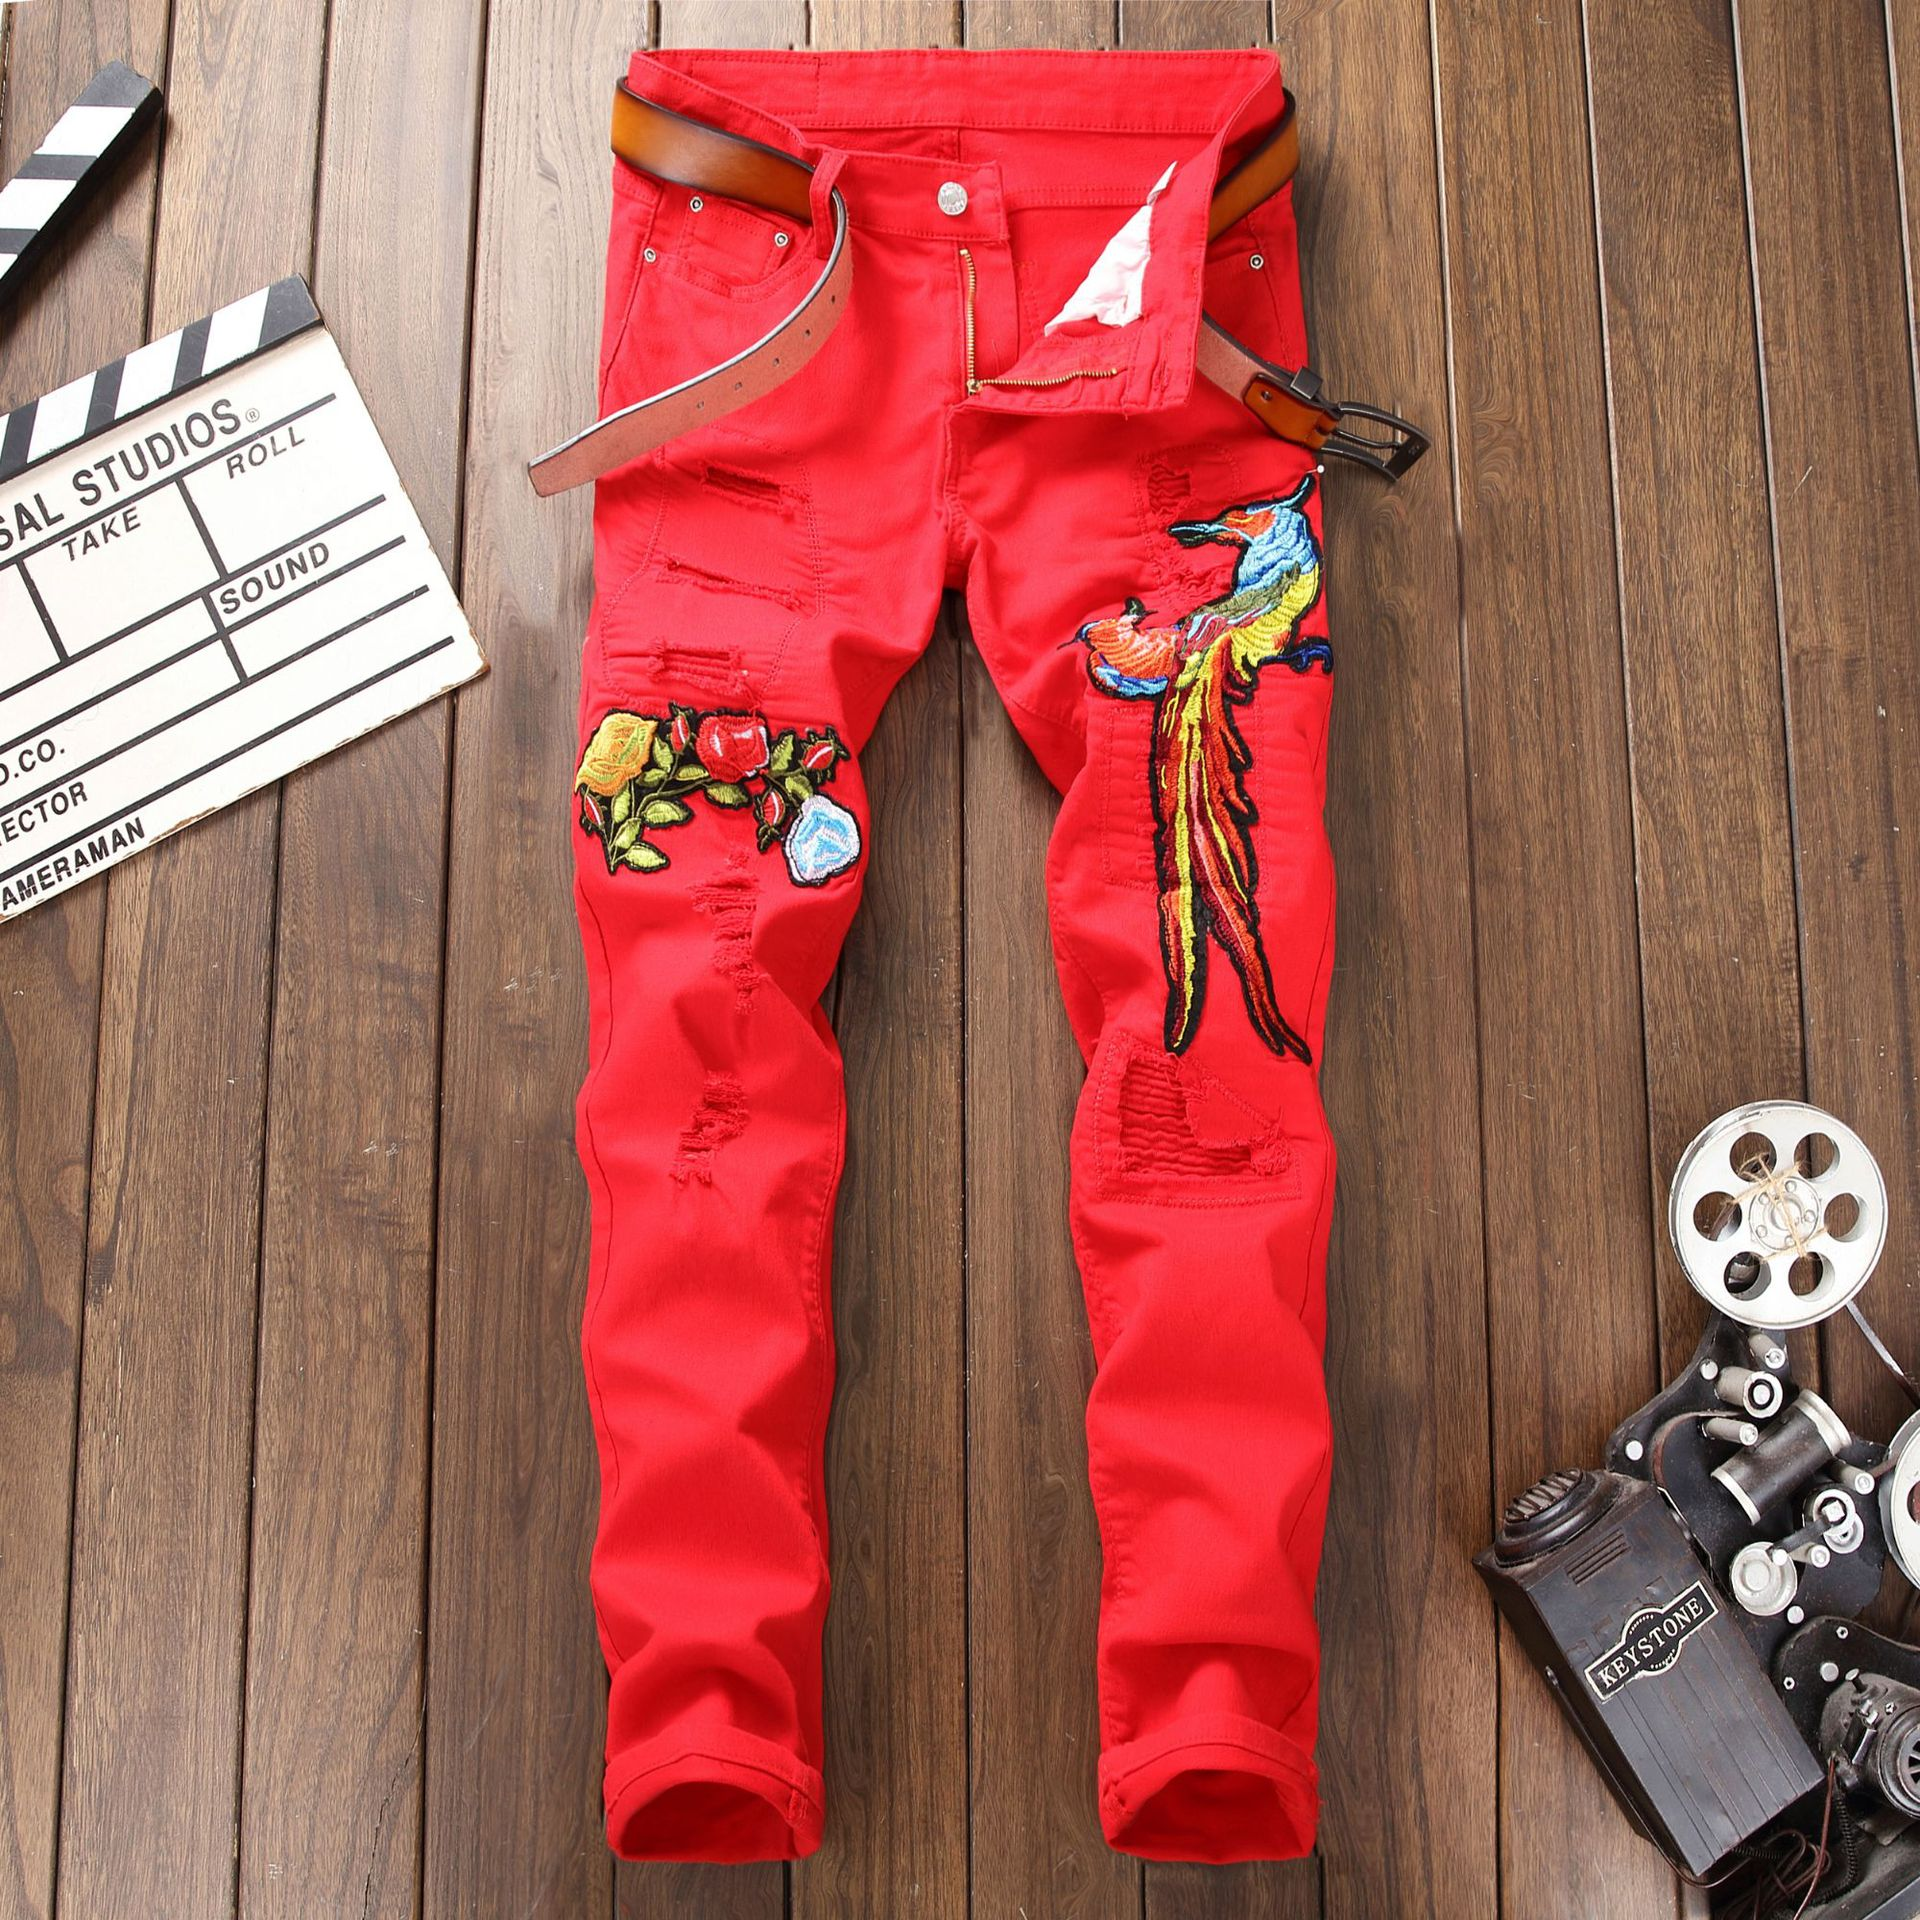 Men's European And American Style Fashion With Holes Jeans Red Elasticity Slim Fit Embroidered Phoenix Trousers